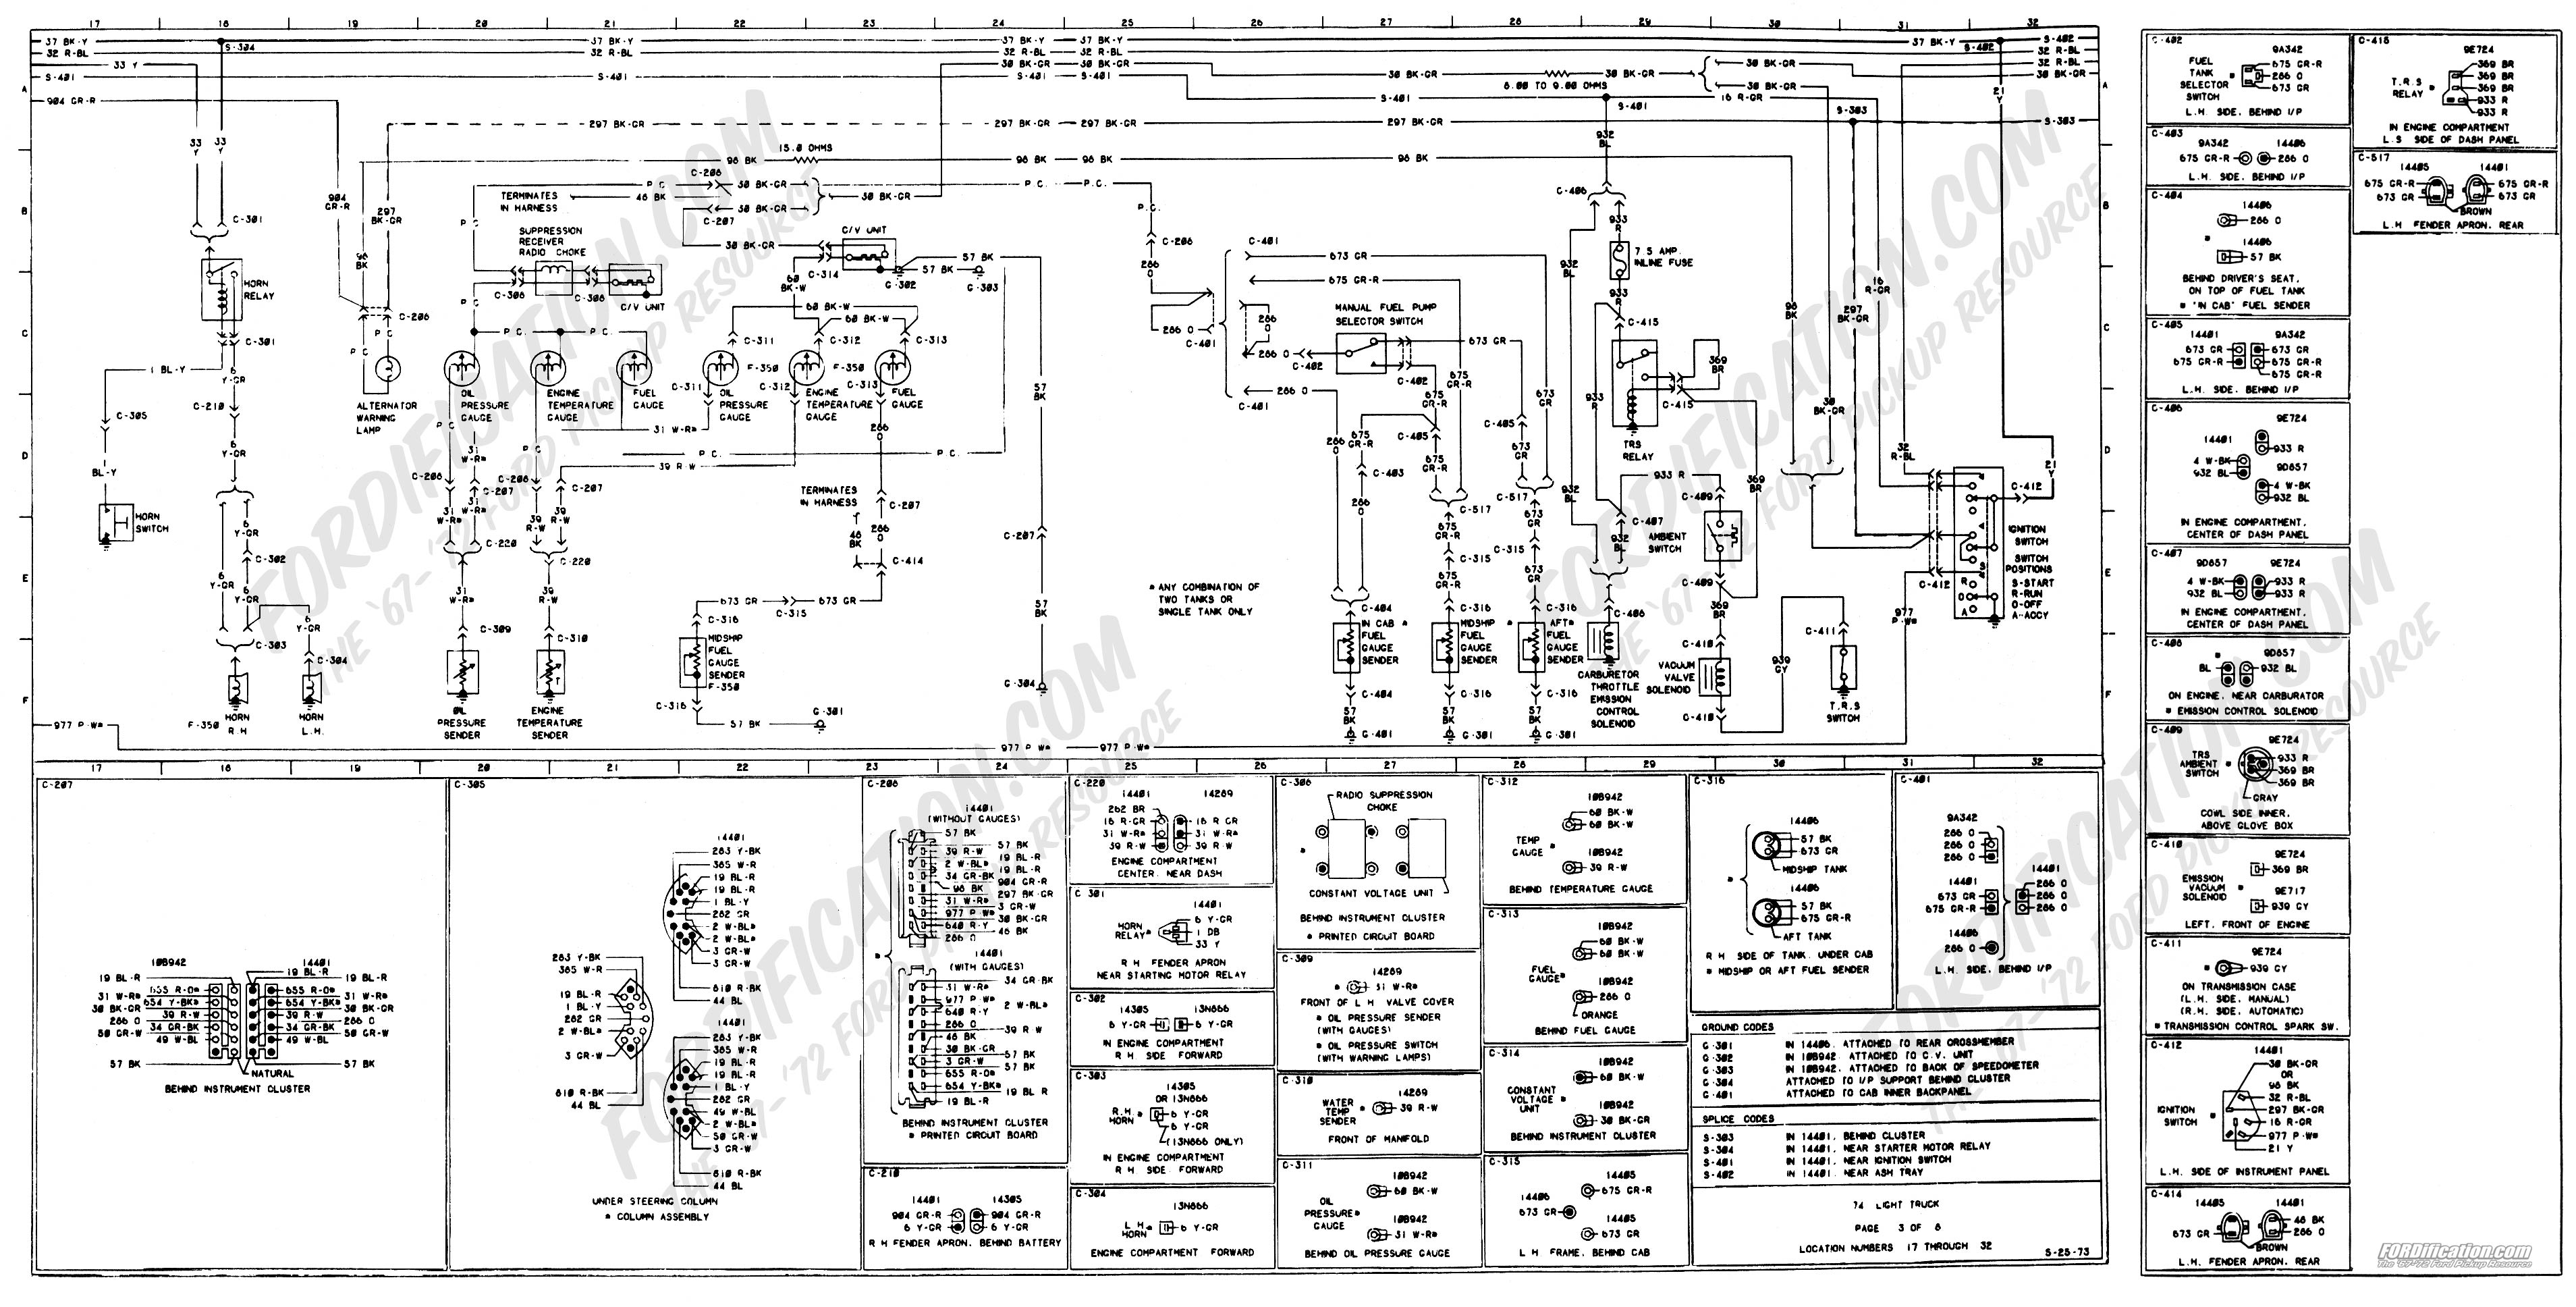 wiring_74master_3of8 1973 1979 ford truck wiring diagrams & schematics fordification net  at gsmx.co